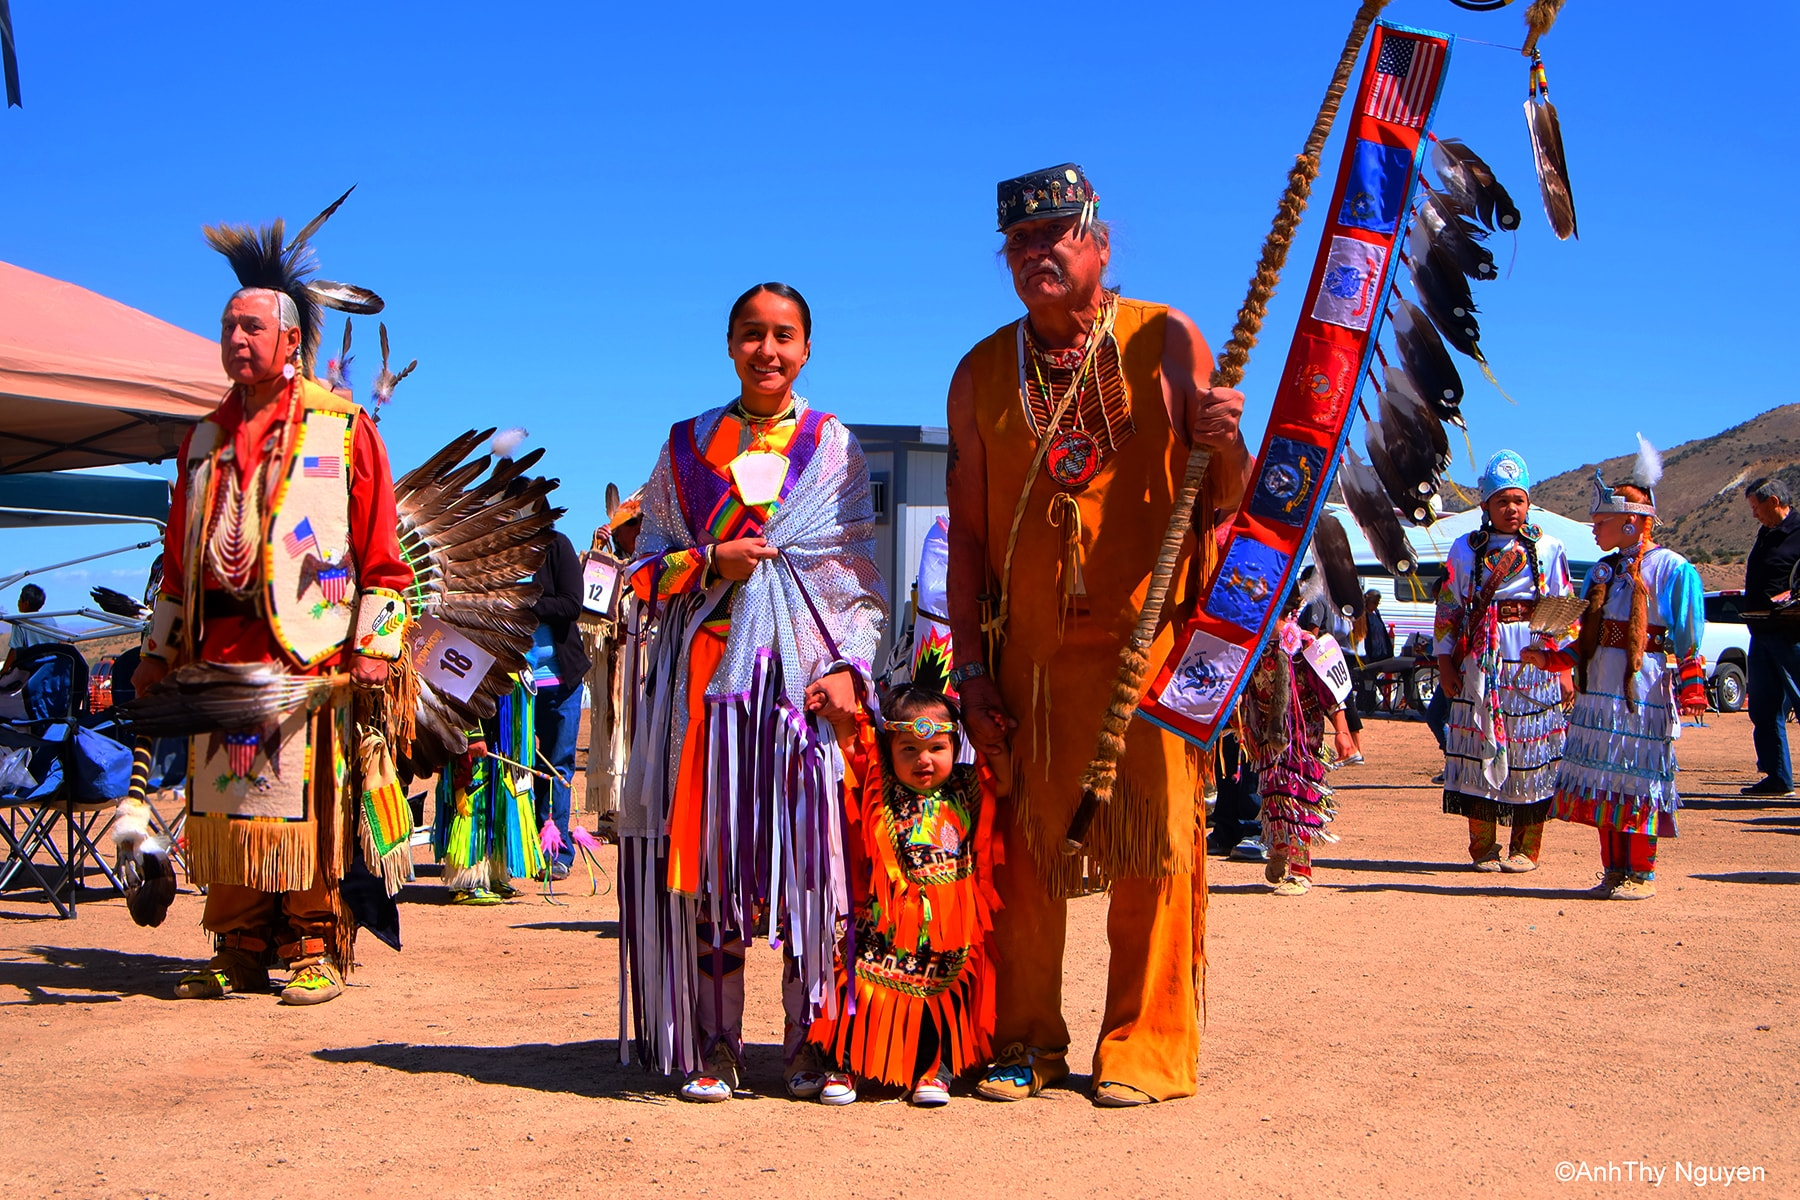 A family in Pow Wow celebration - Native American Tradion